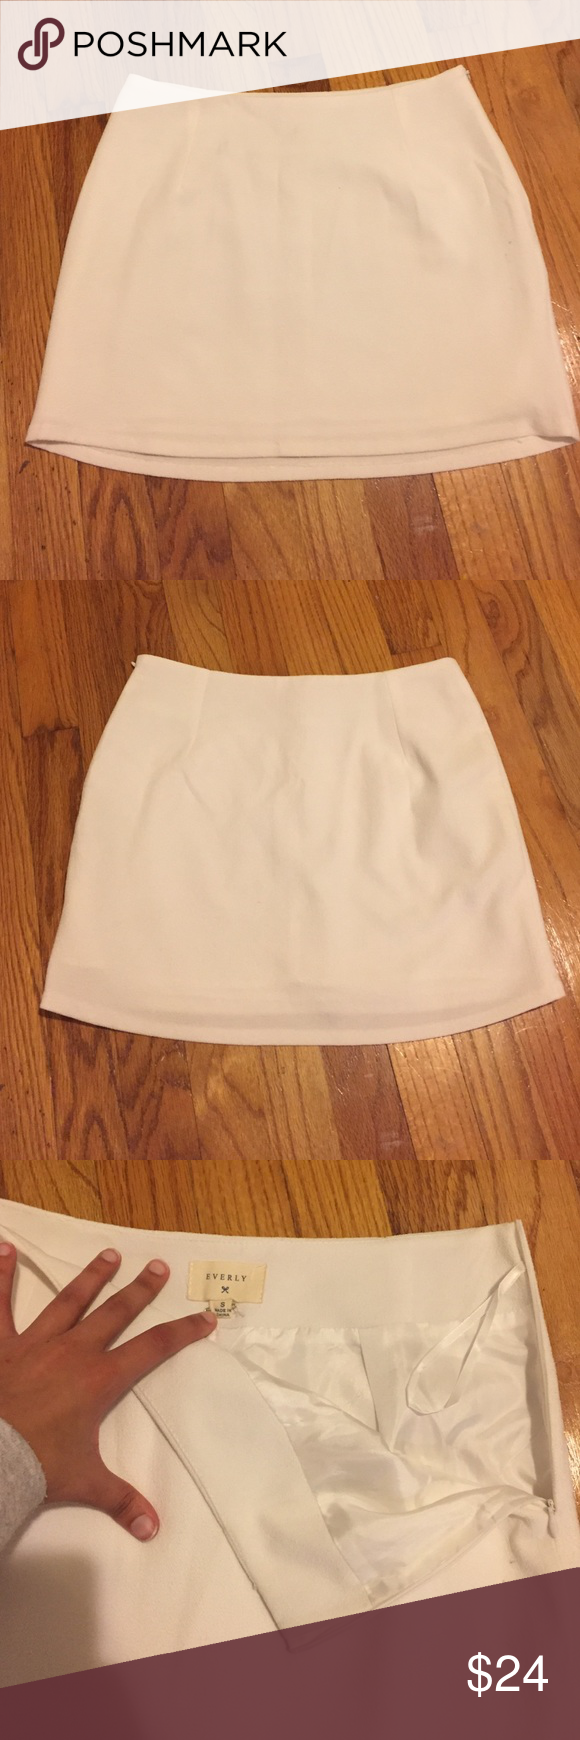 Everly Mini Skirt True white Everly mini skirt. Size Small. Waist measures about 14 inches and it is about 13.5 inches long. Loved this skirt and even took the tags off, but the right event never presented itself for me to wear it. Very classy material and has a 100% polyester lining. Like new. Everly Skirts Mini